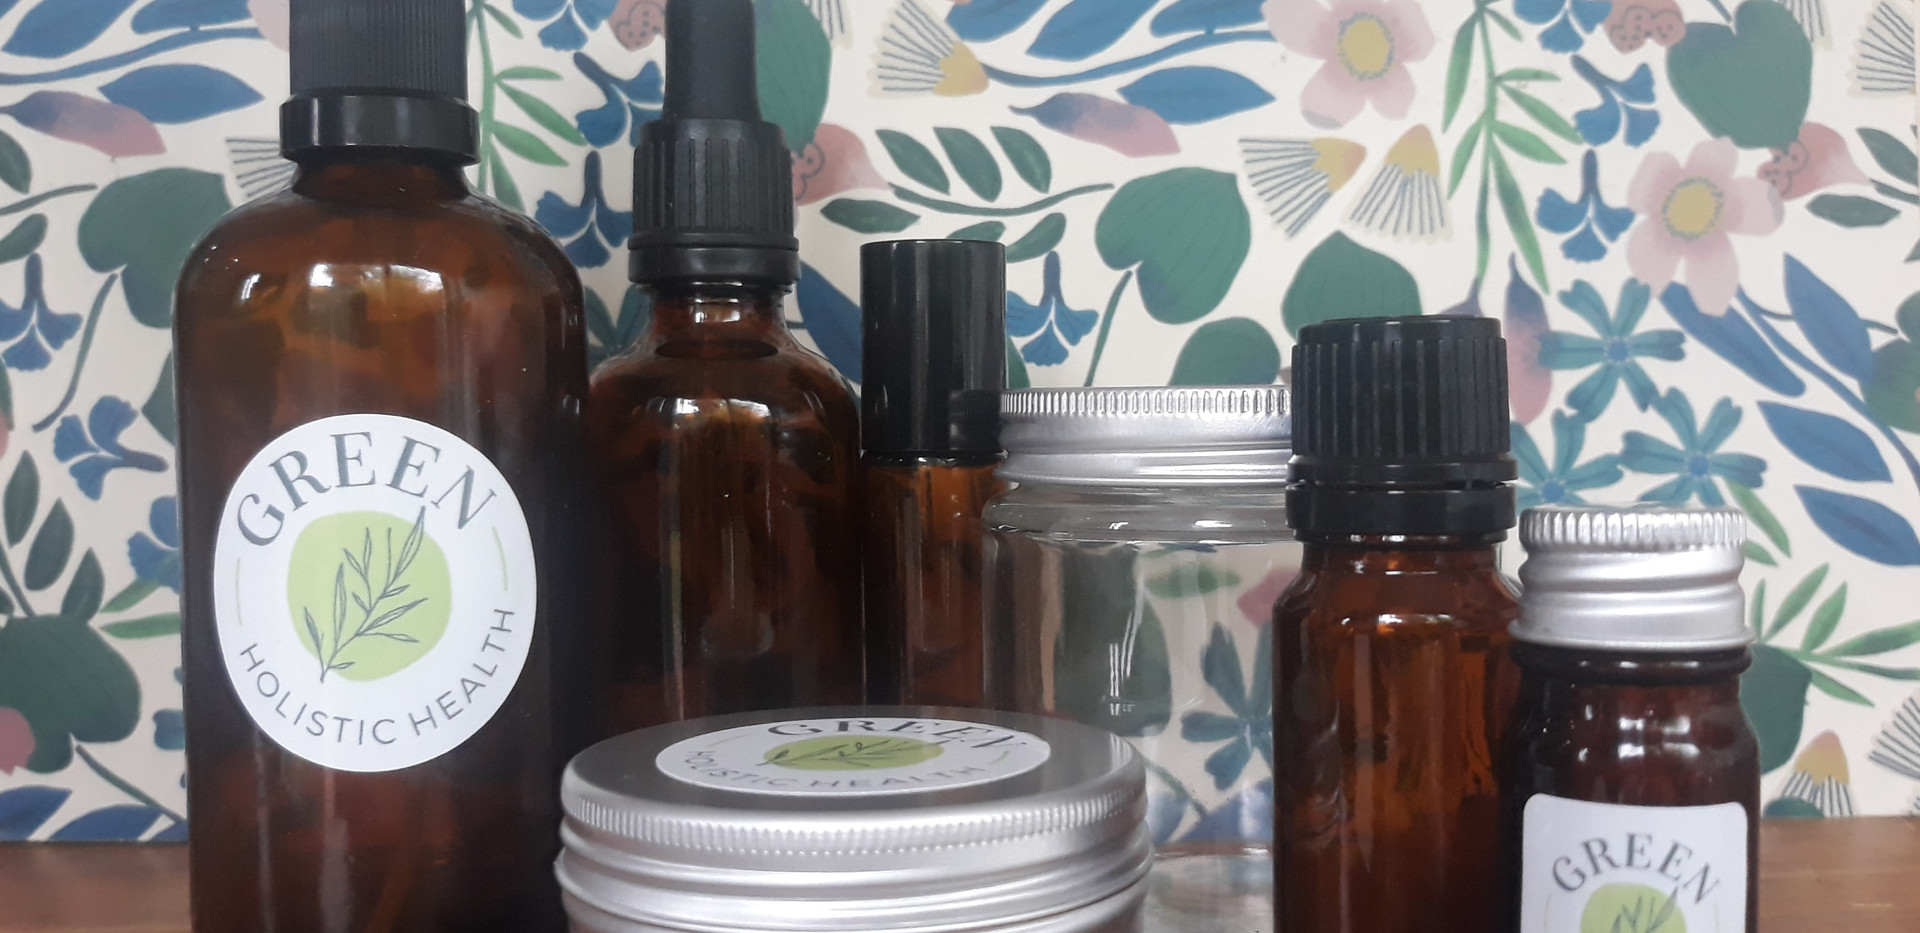 Apothecary Service in Clinic